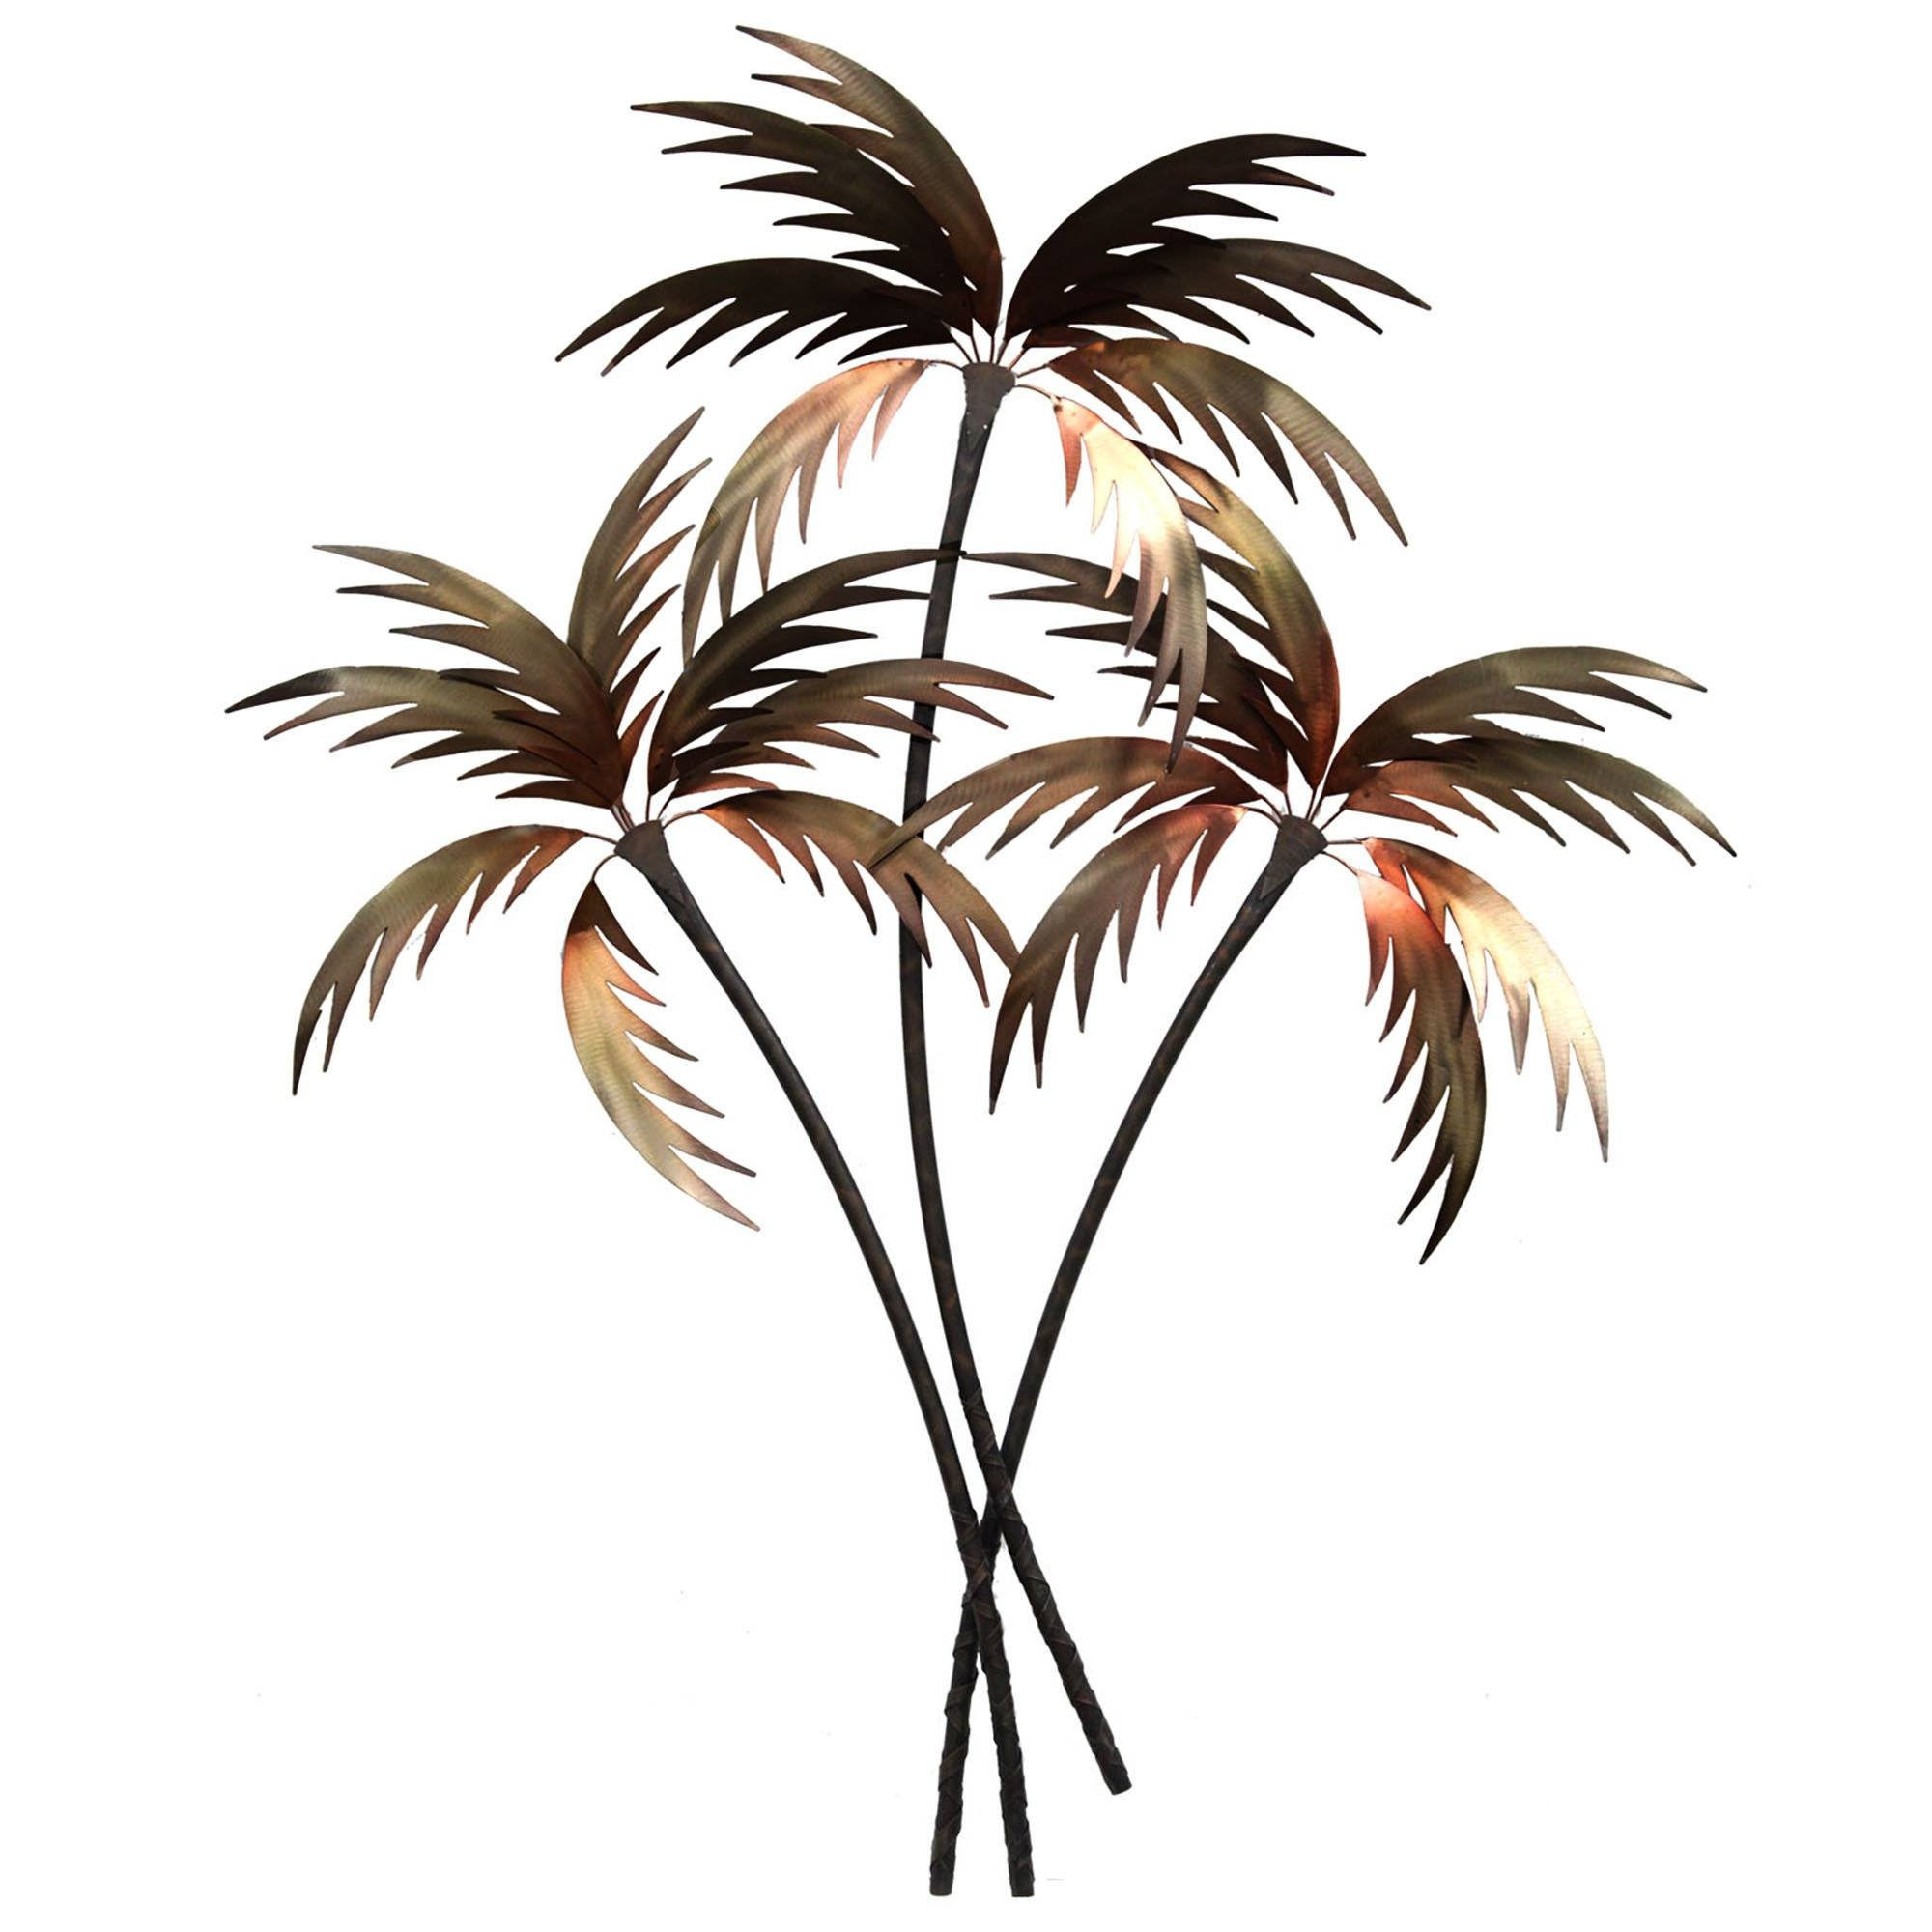 Palm Tree Wall Art, Palm Tree Bedroom Decor Palm Tree Metal With Regard To 2018 Metal Wall Art Palm Trees (View 6 of 20)